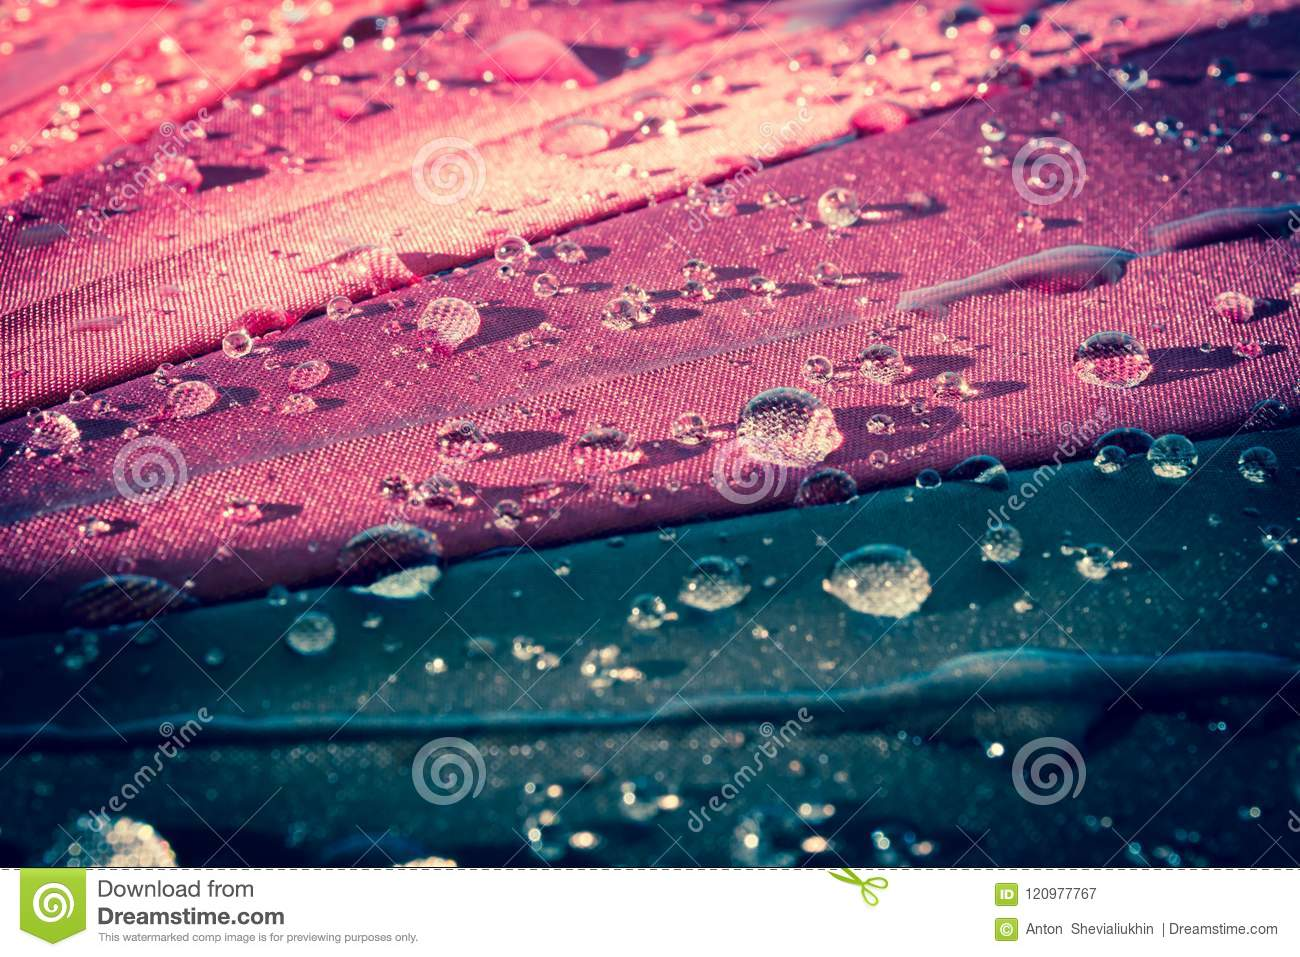 raindrops on a colorful umbrella with all the colors of the rainbow